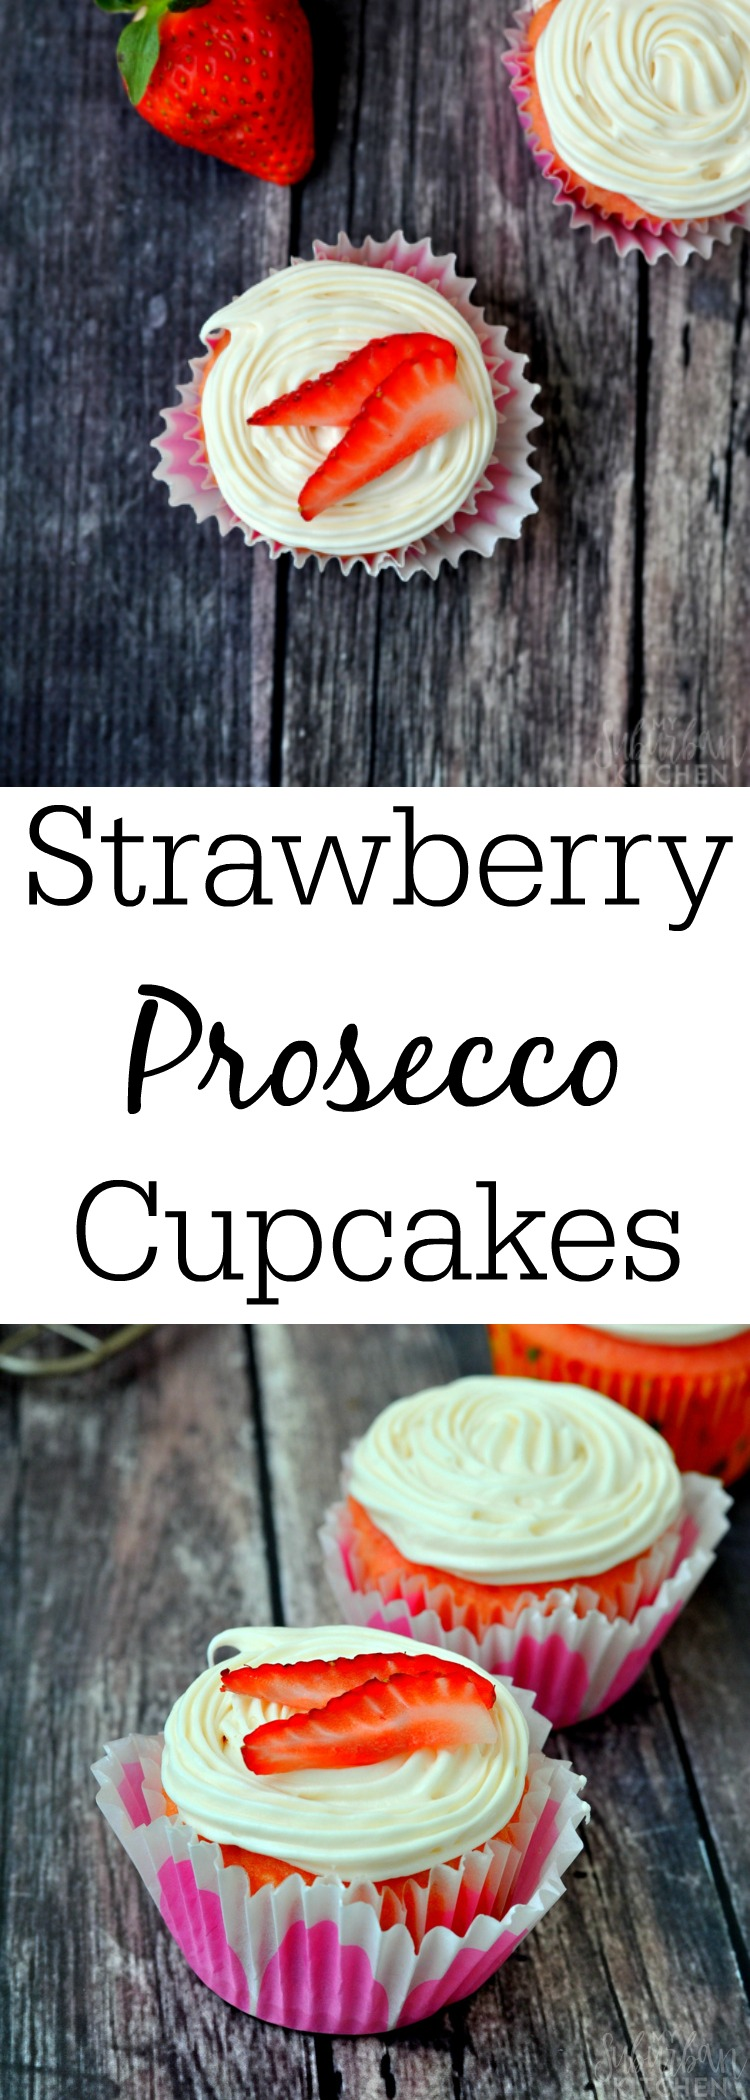 Strawberry Prosecco Cupcakes - the best combination of champagne and strawberries ever